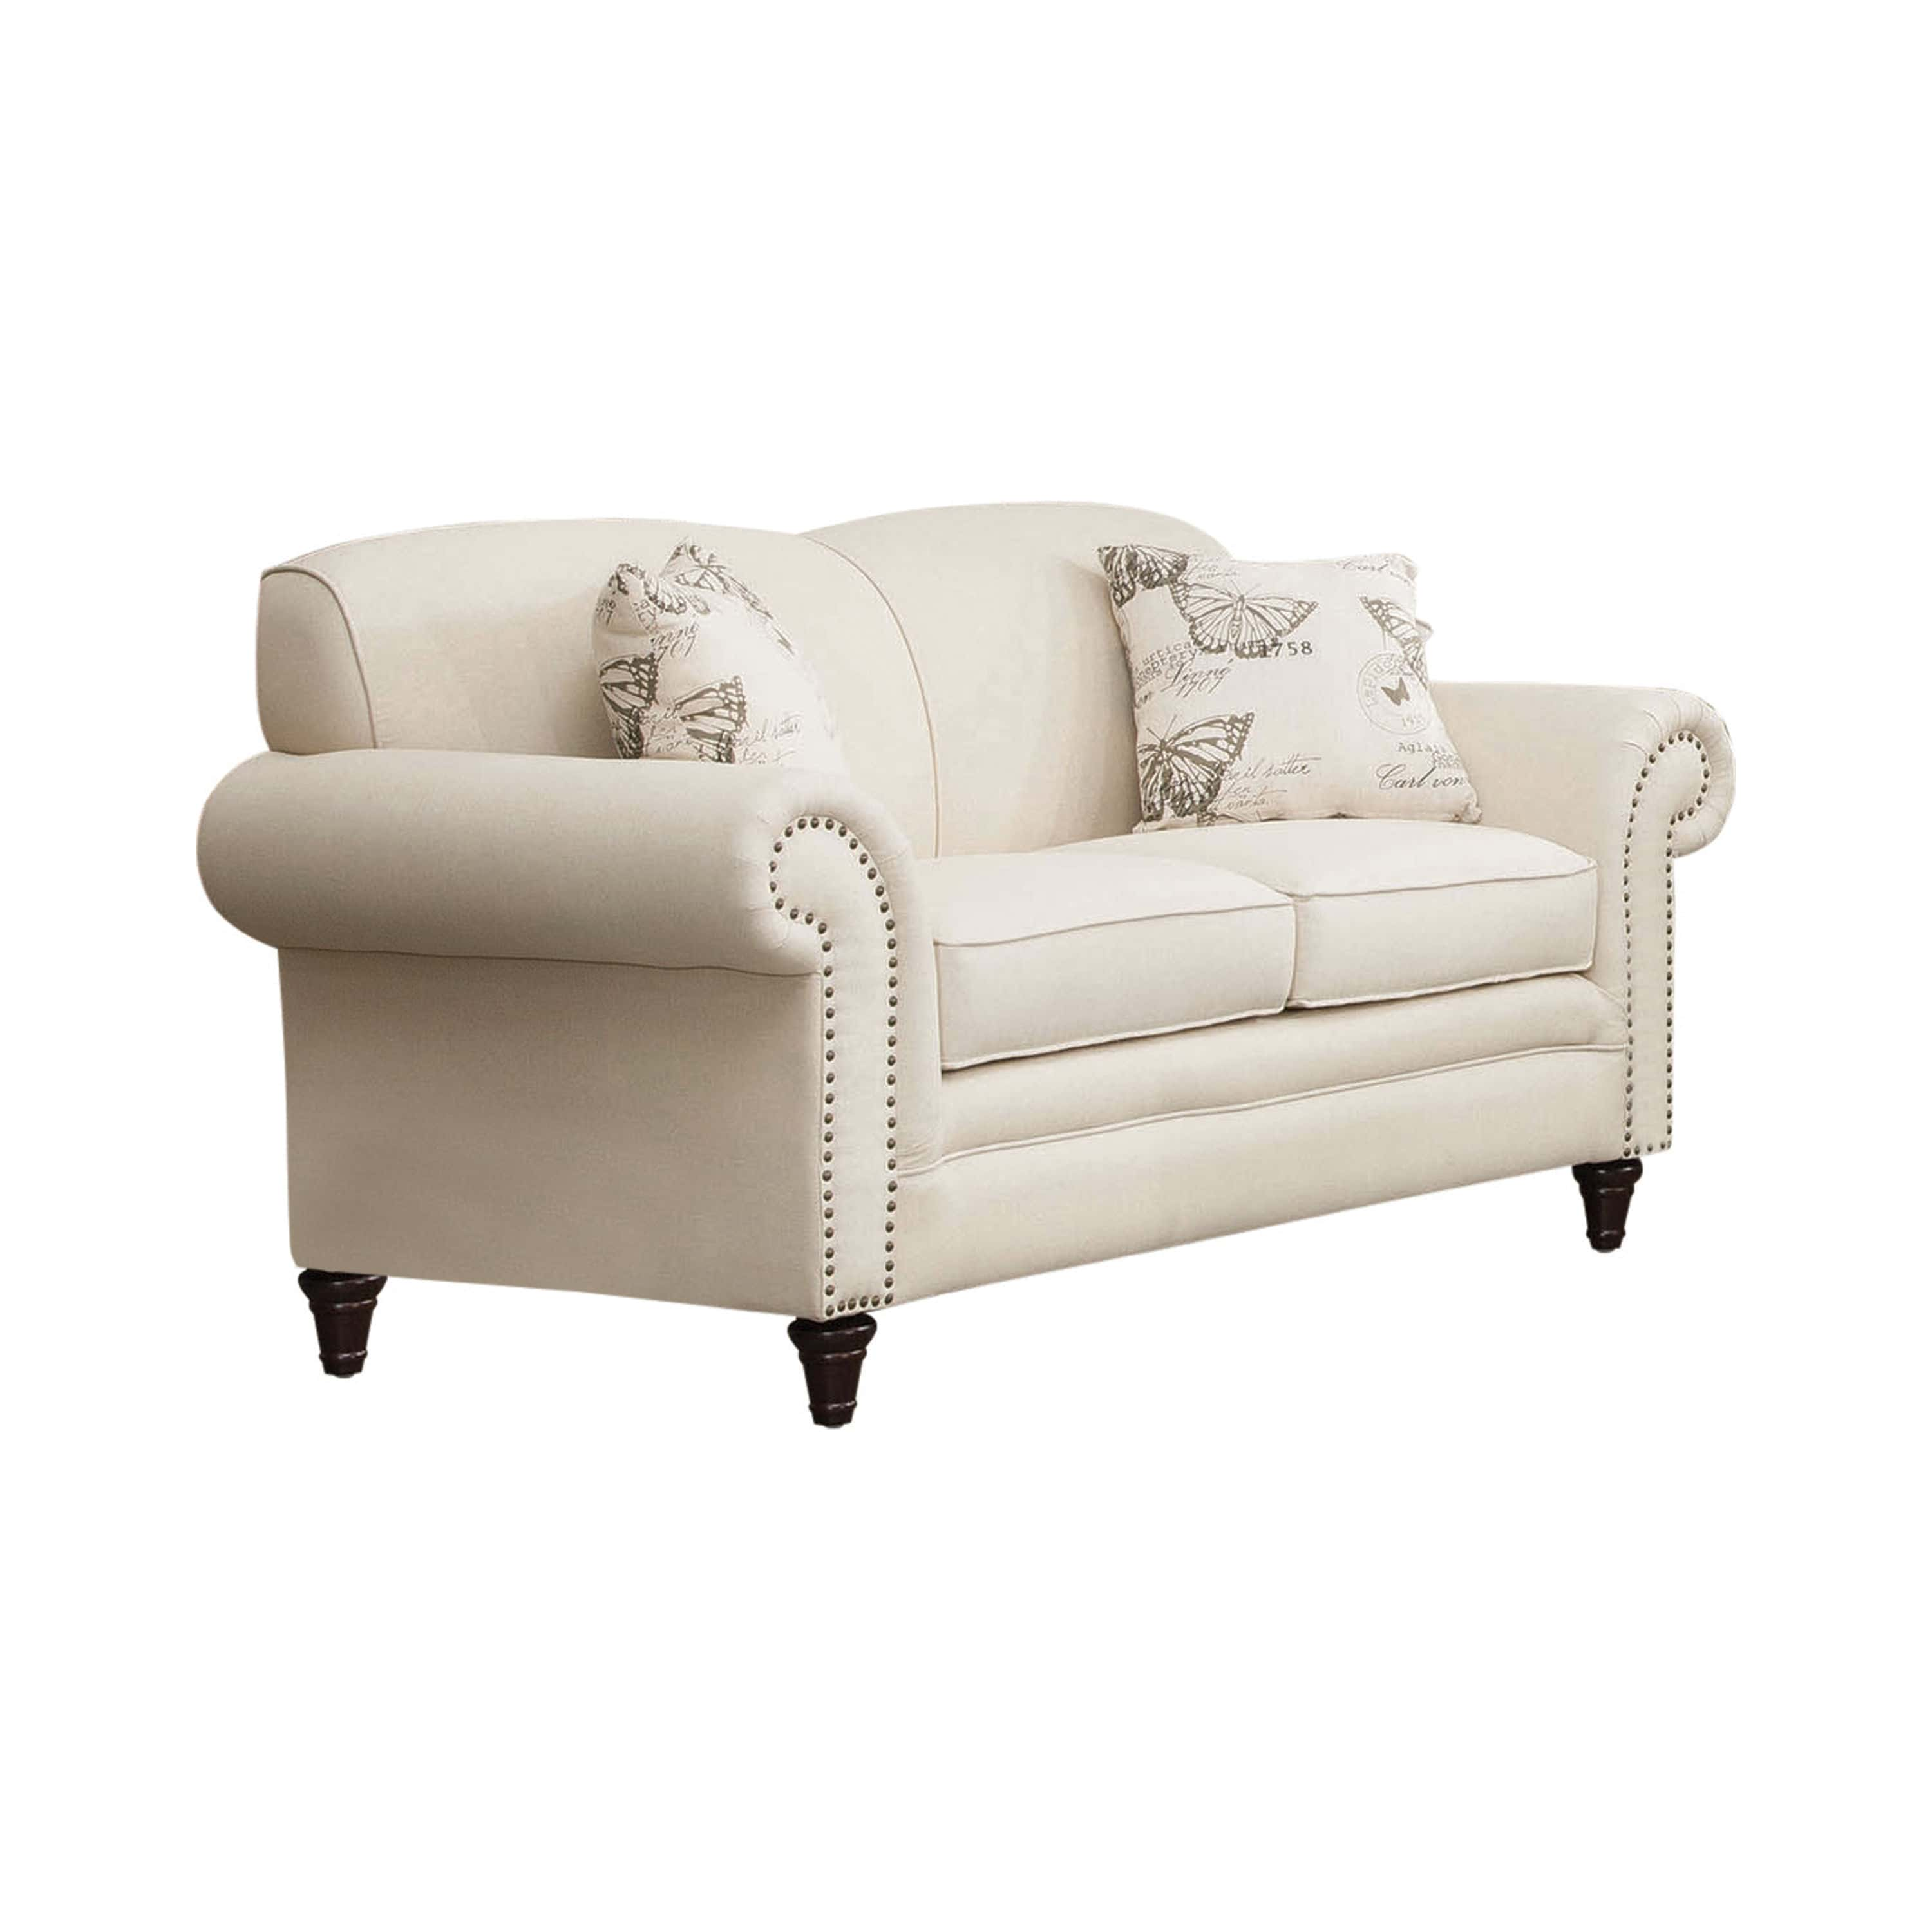 Norah Oatmeal Upholstered Loveseat By Coaster